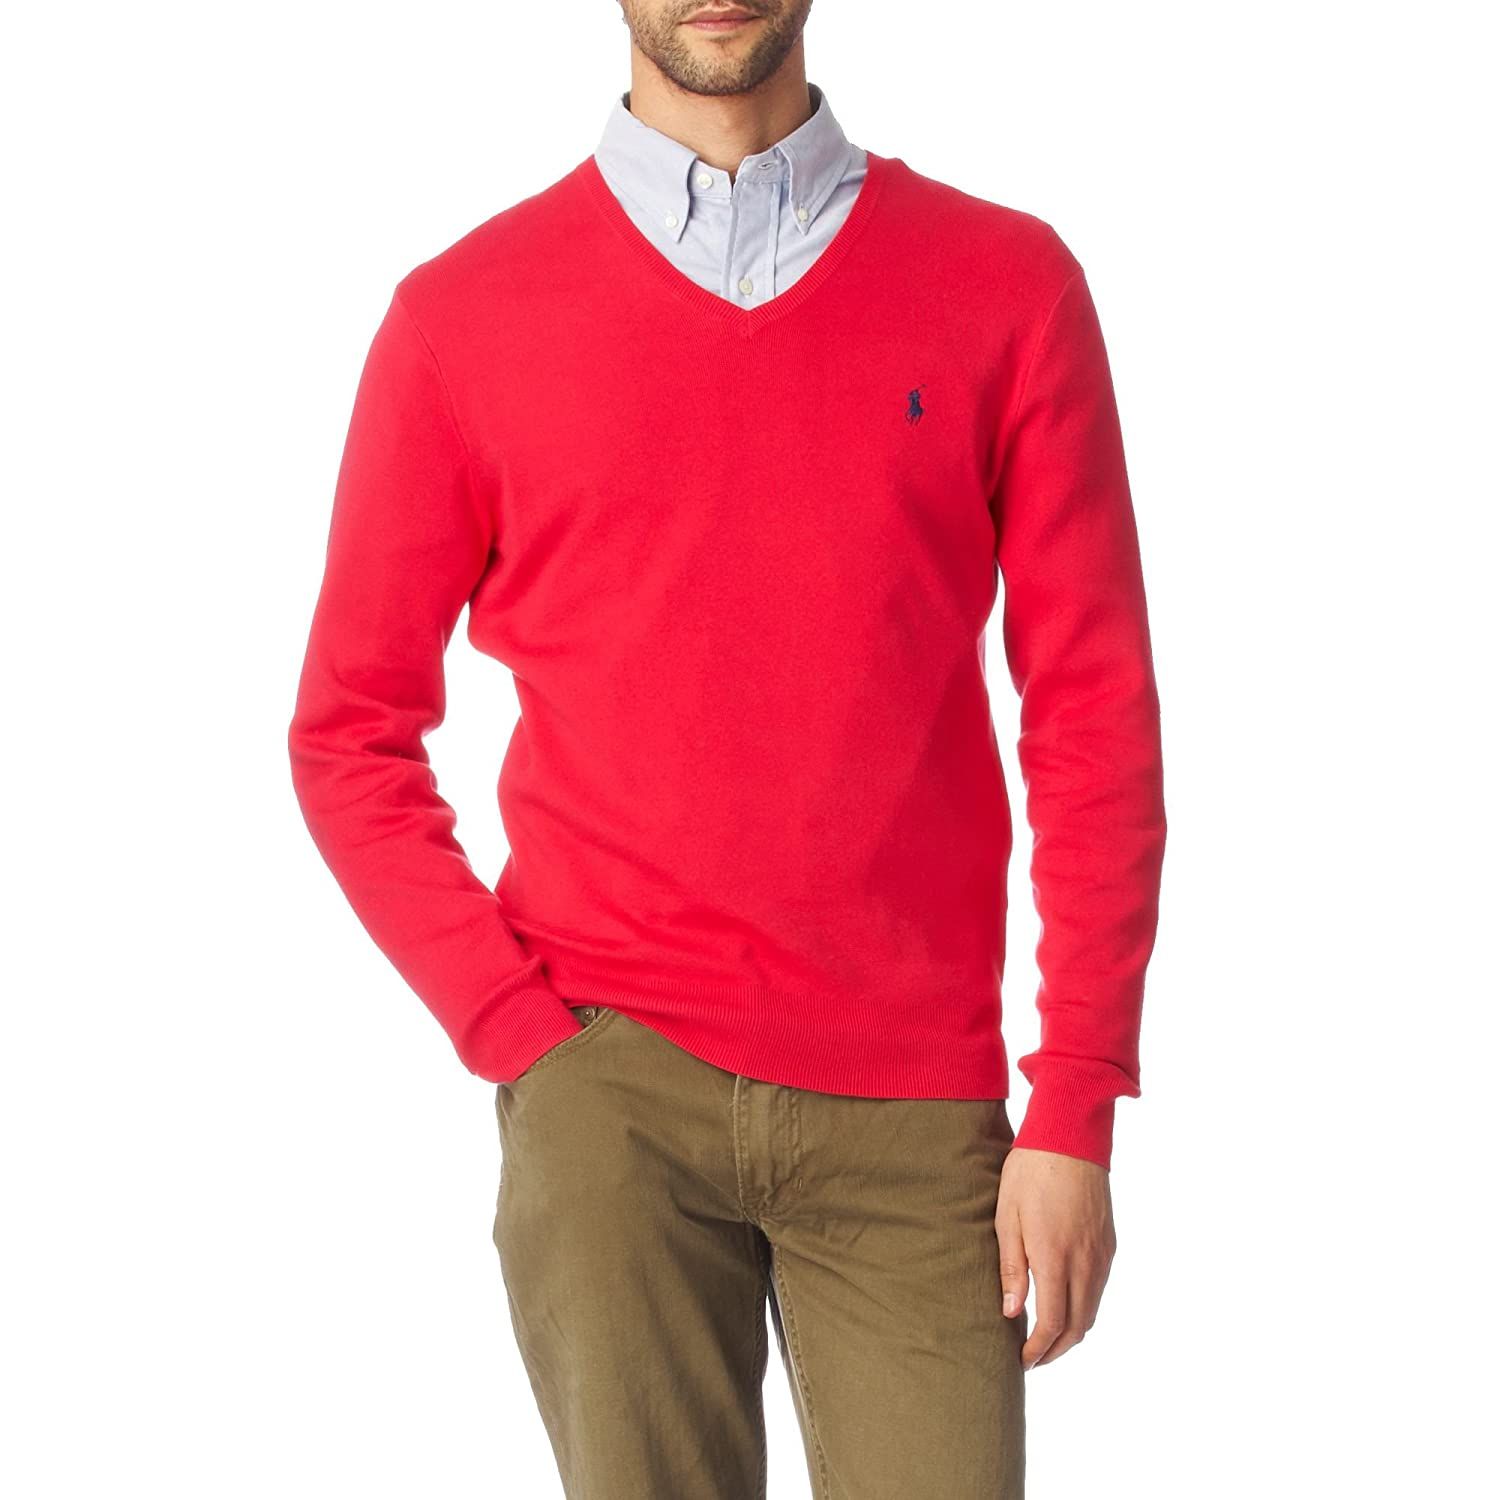 0bf0f3b86 Ralph Lauren Mens Pima Cotton V Neck Sweater